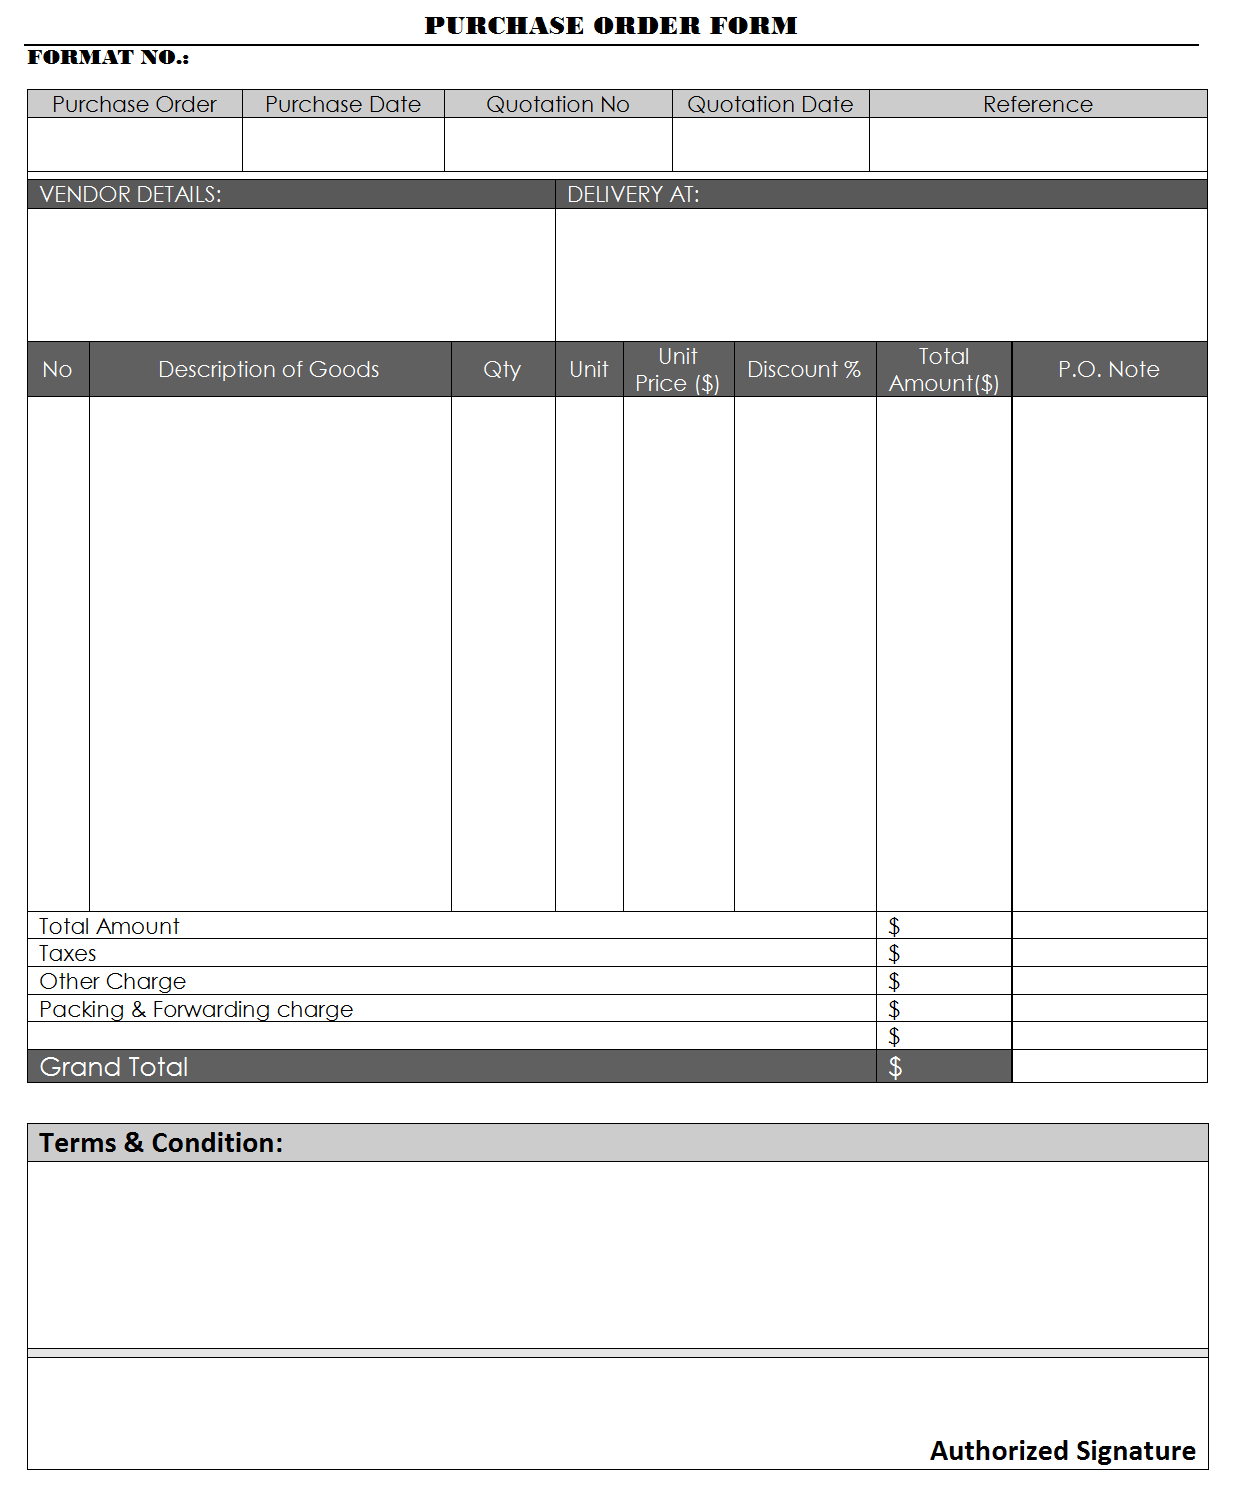 Purchase Order Form  Purchase Order Format In Excel